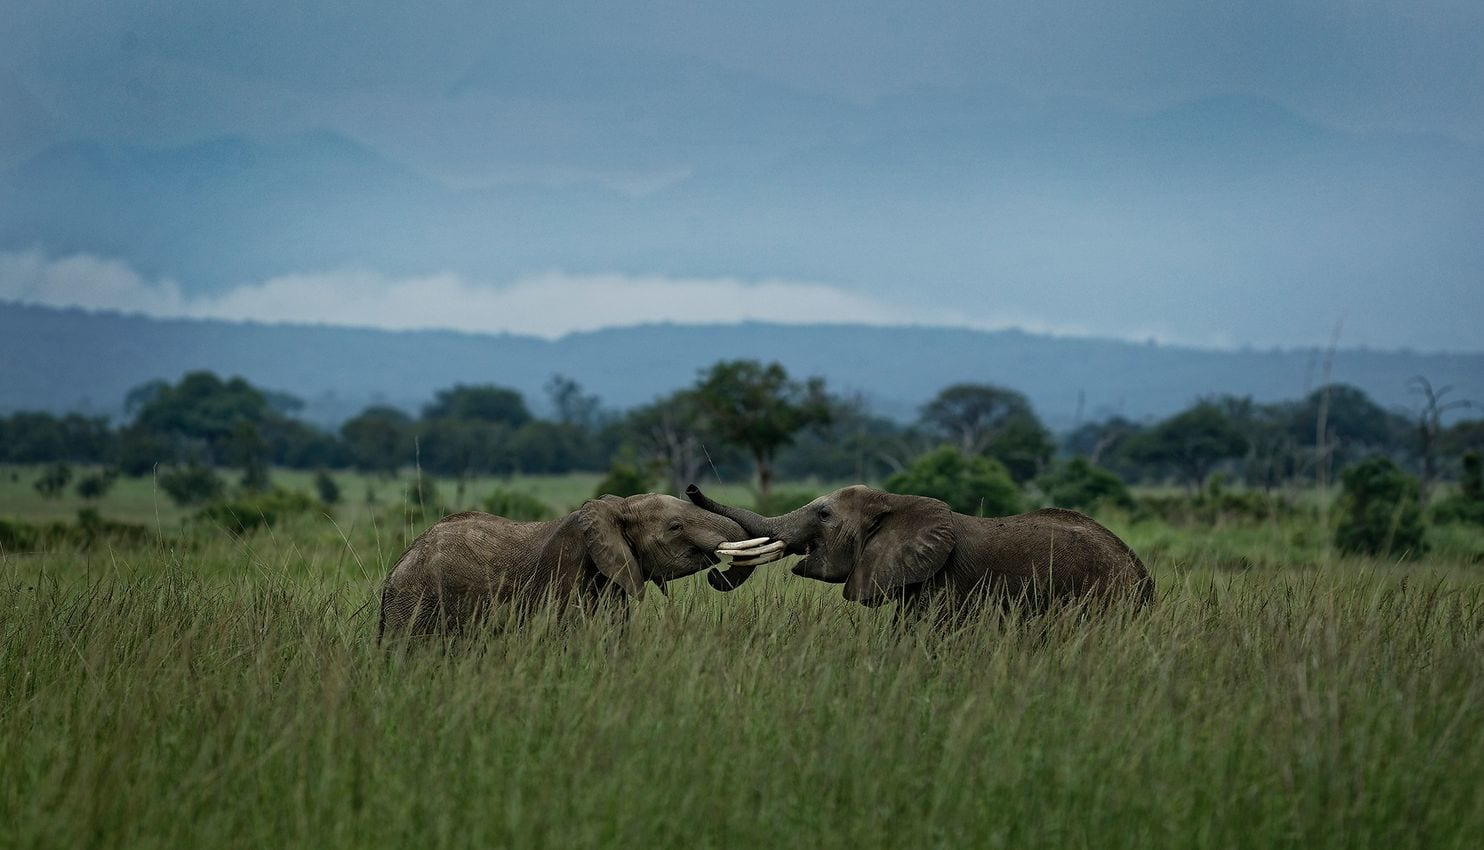 Two Elephants in Mikumi National park, Tanzania Photo:  Ben Curtis/AP Photo